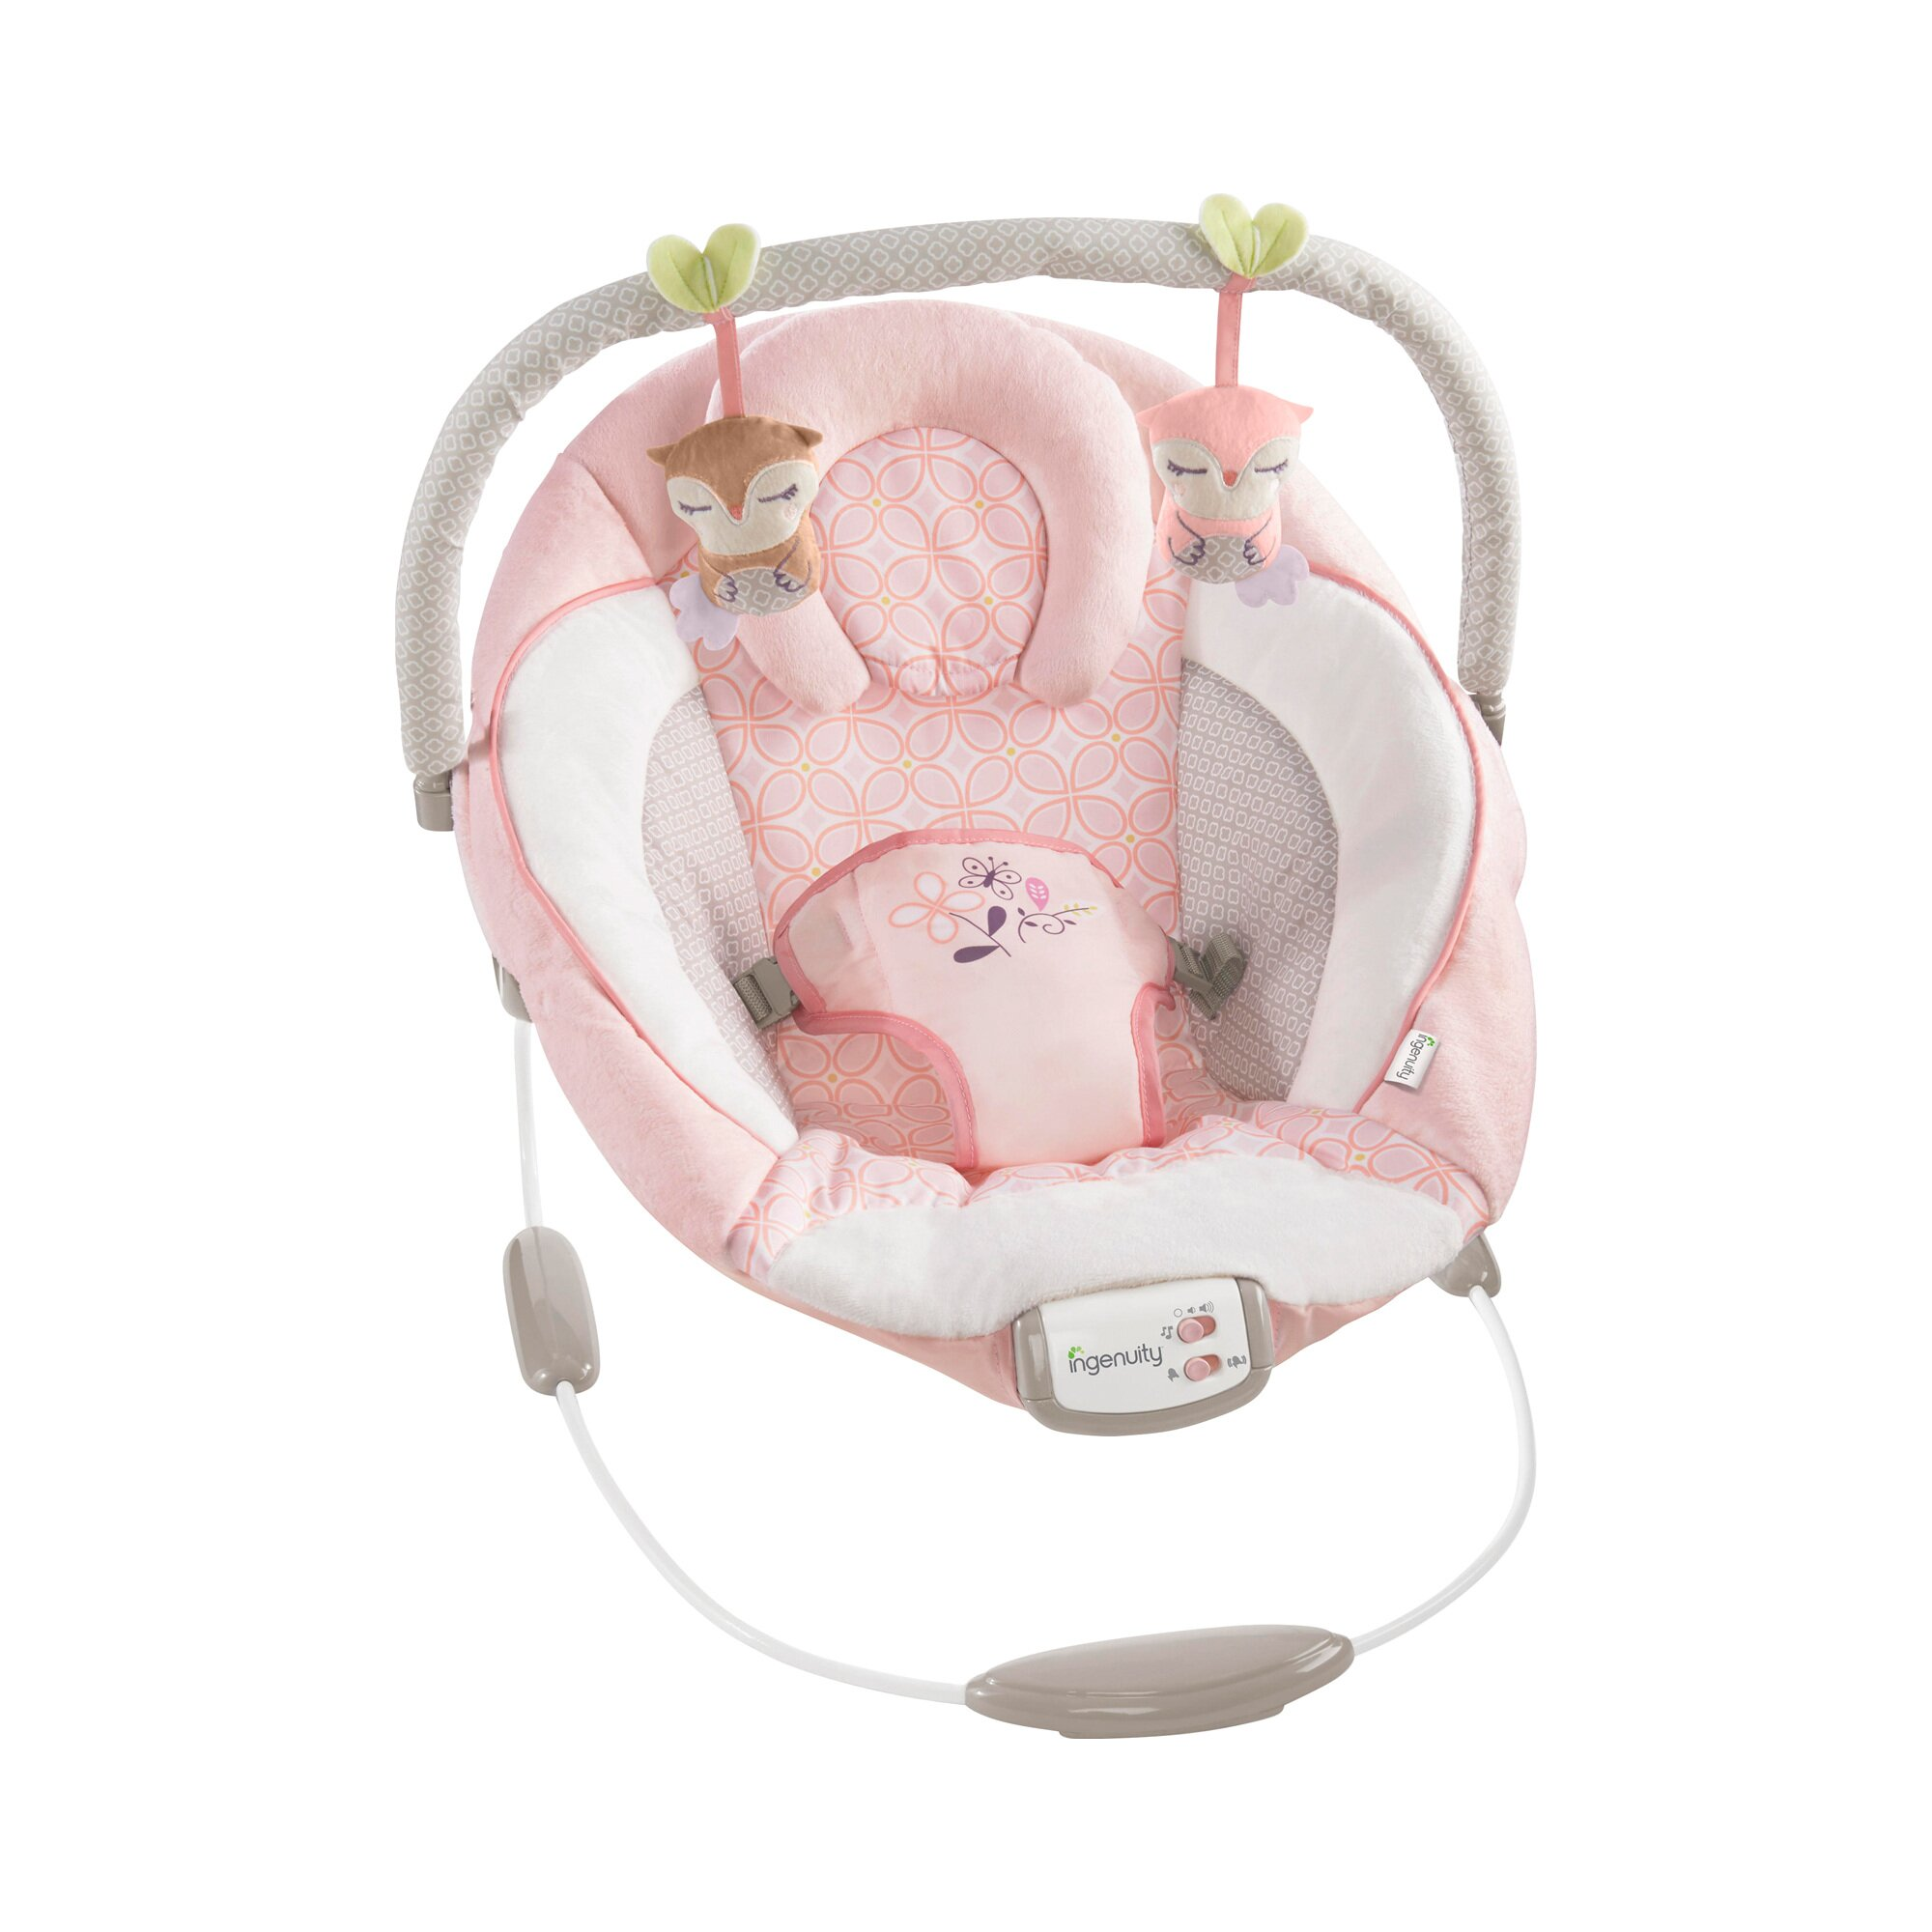 ingenuity-babywippe-audrey